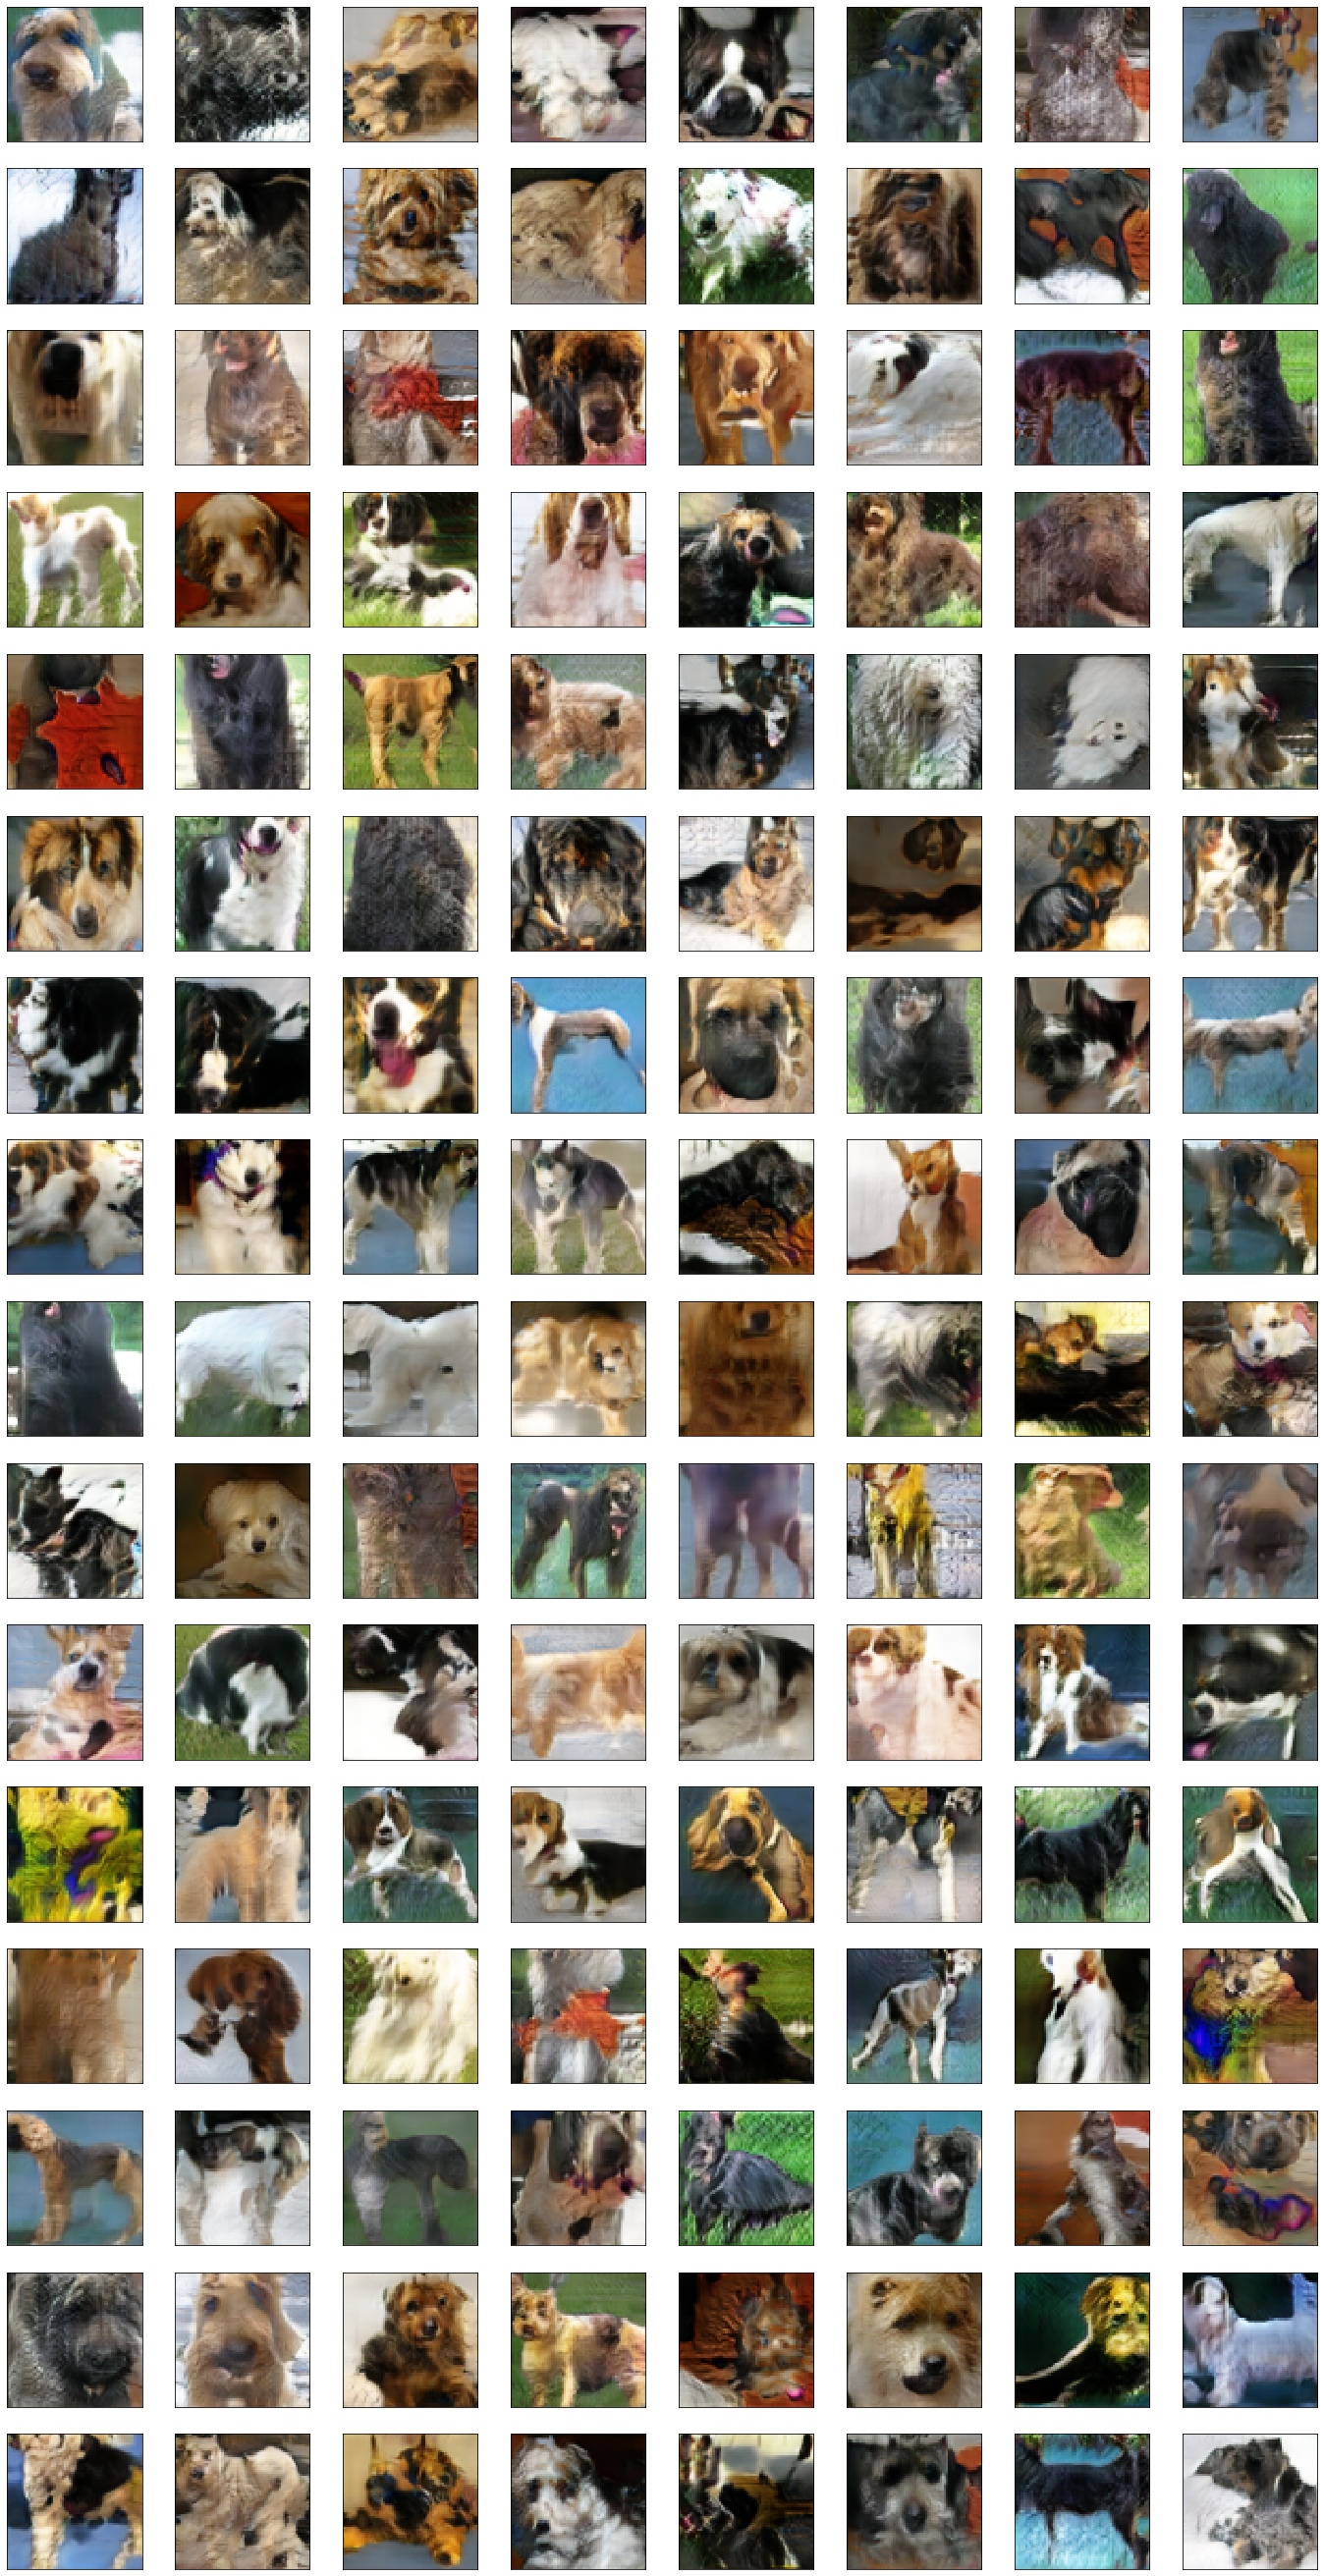 Dog images show-off thread | Kaggle